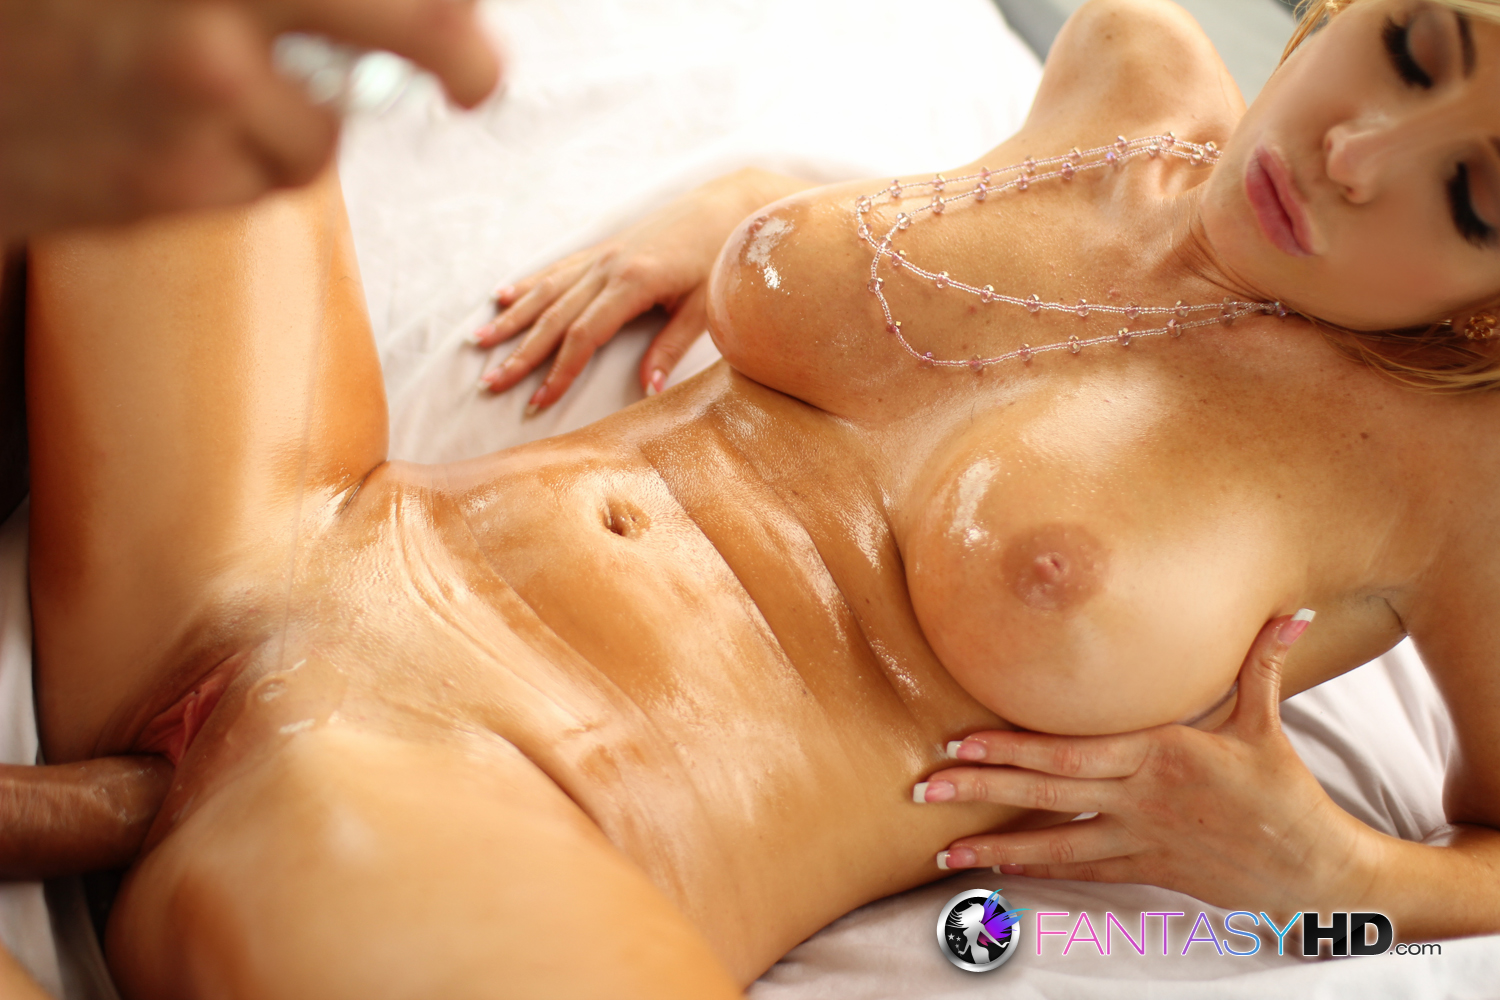 Xxx All girl massage full videos